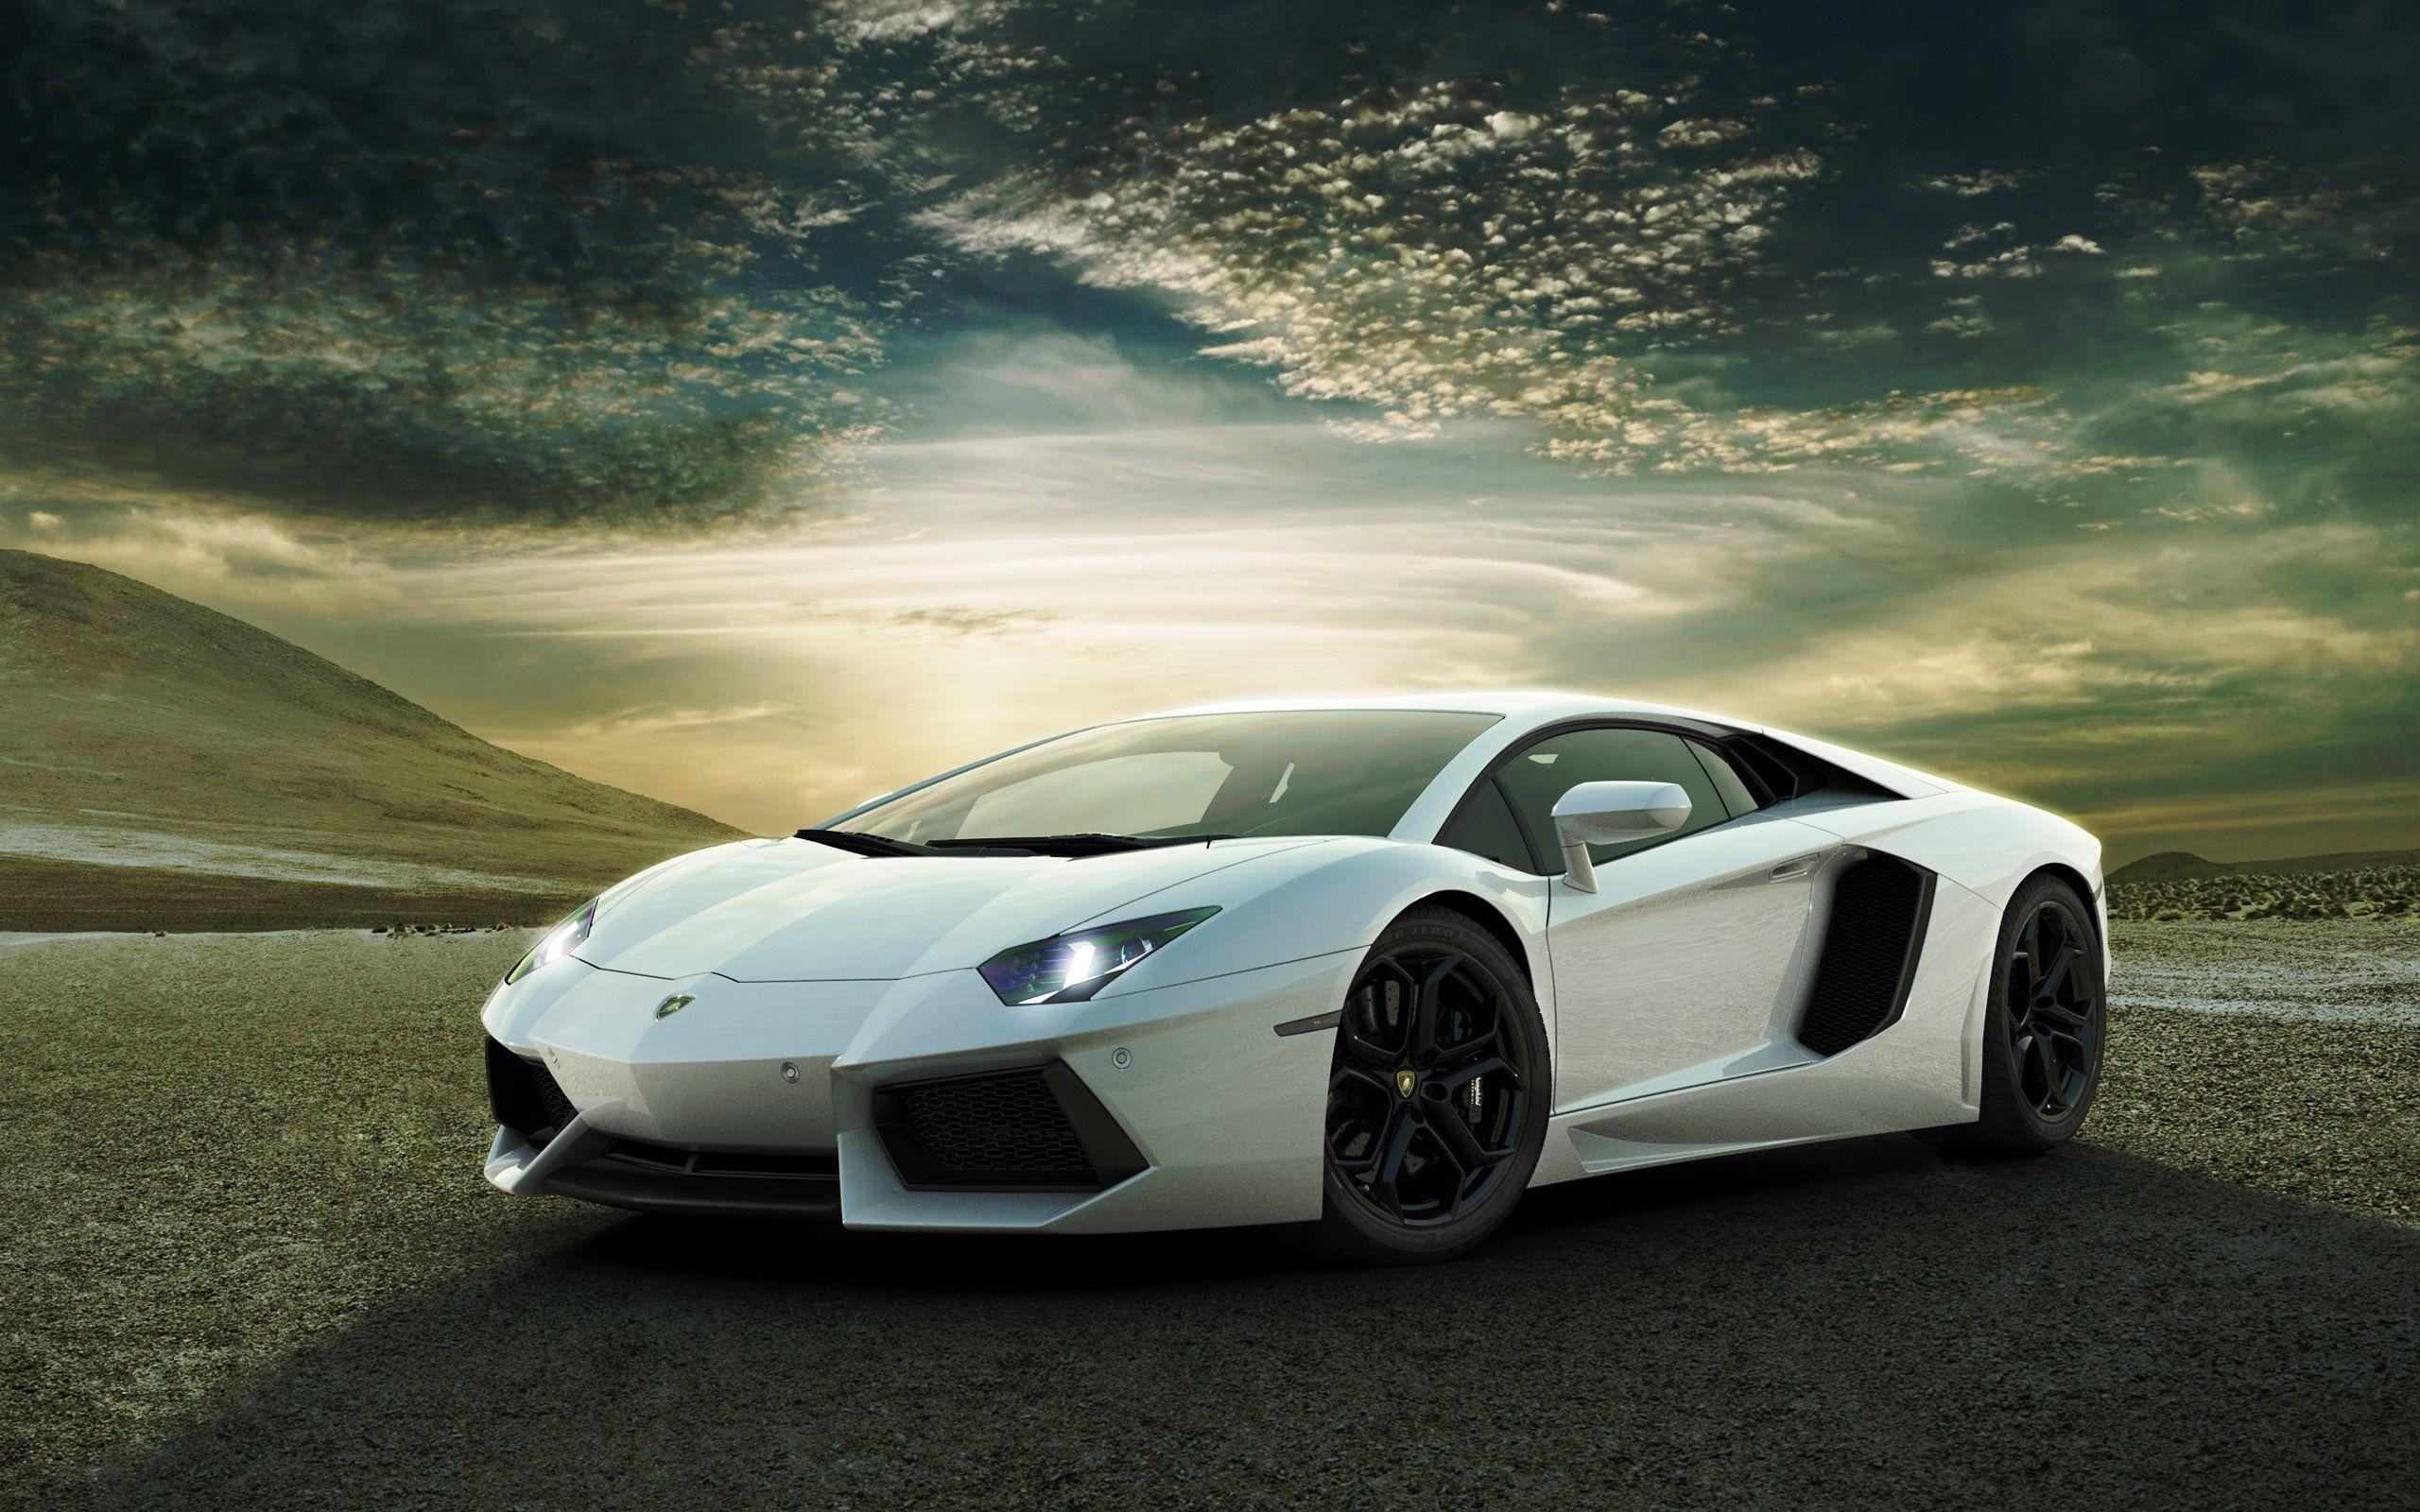 Download <b>Lamborghini Wallpapers</b> In <b>HD</b> For Desktop And Mobile Here